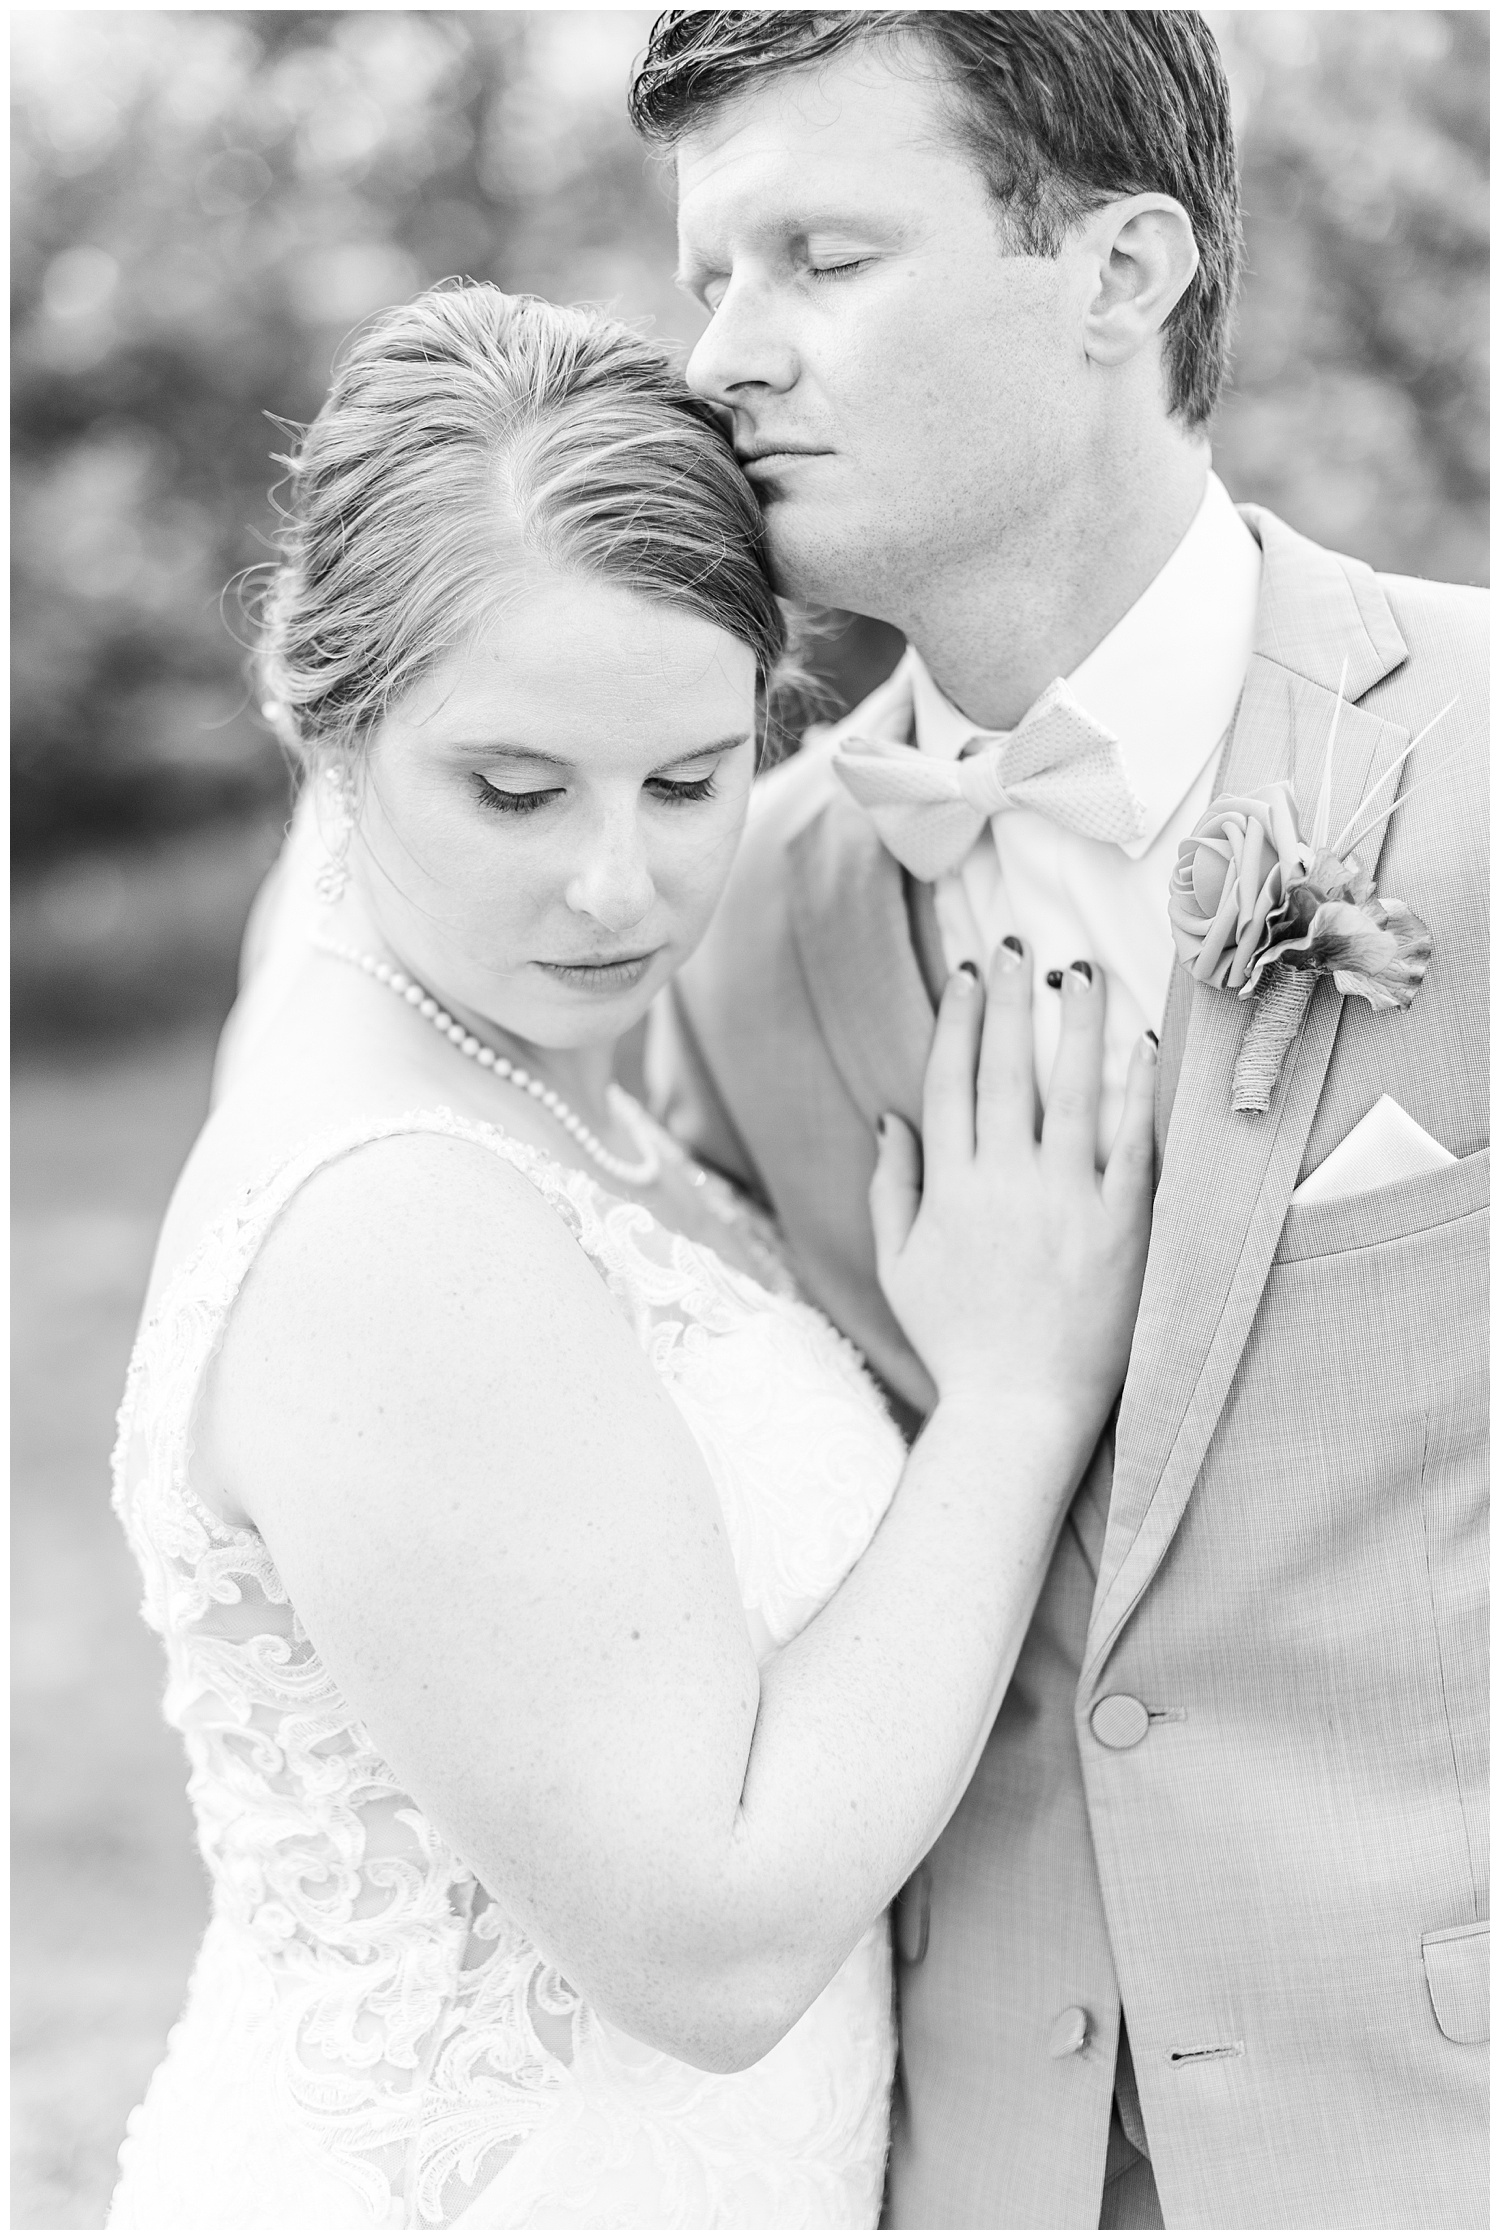 Chris and Hannah embrace each other on their wedding day in Spirit Lake Iowa | CB Studio